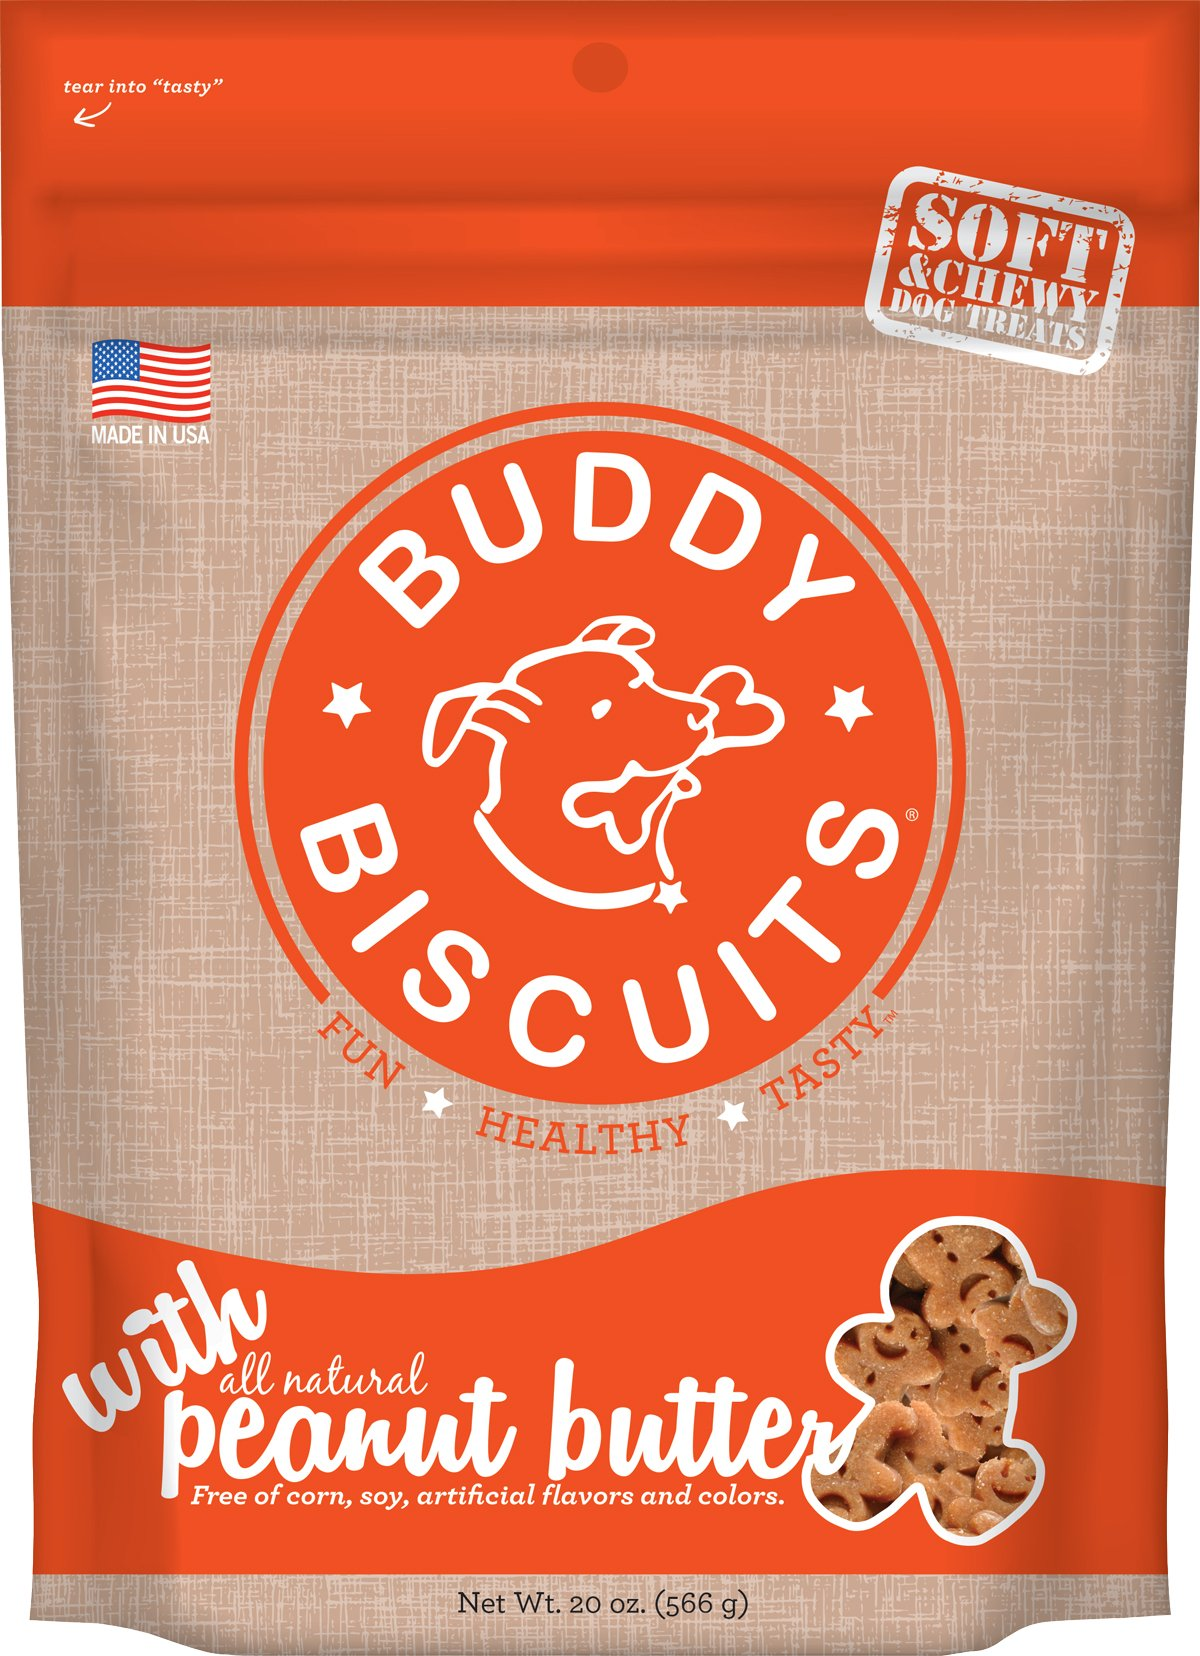 Buddy Biscuits Soft & Chewy Dog Treats with All Natural Peanut Butter 20 oz by Buddy